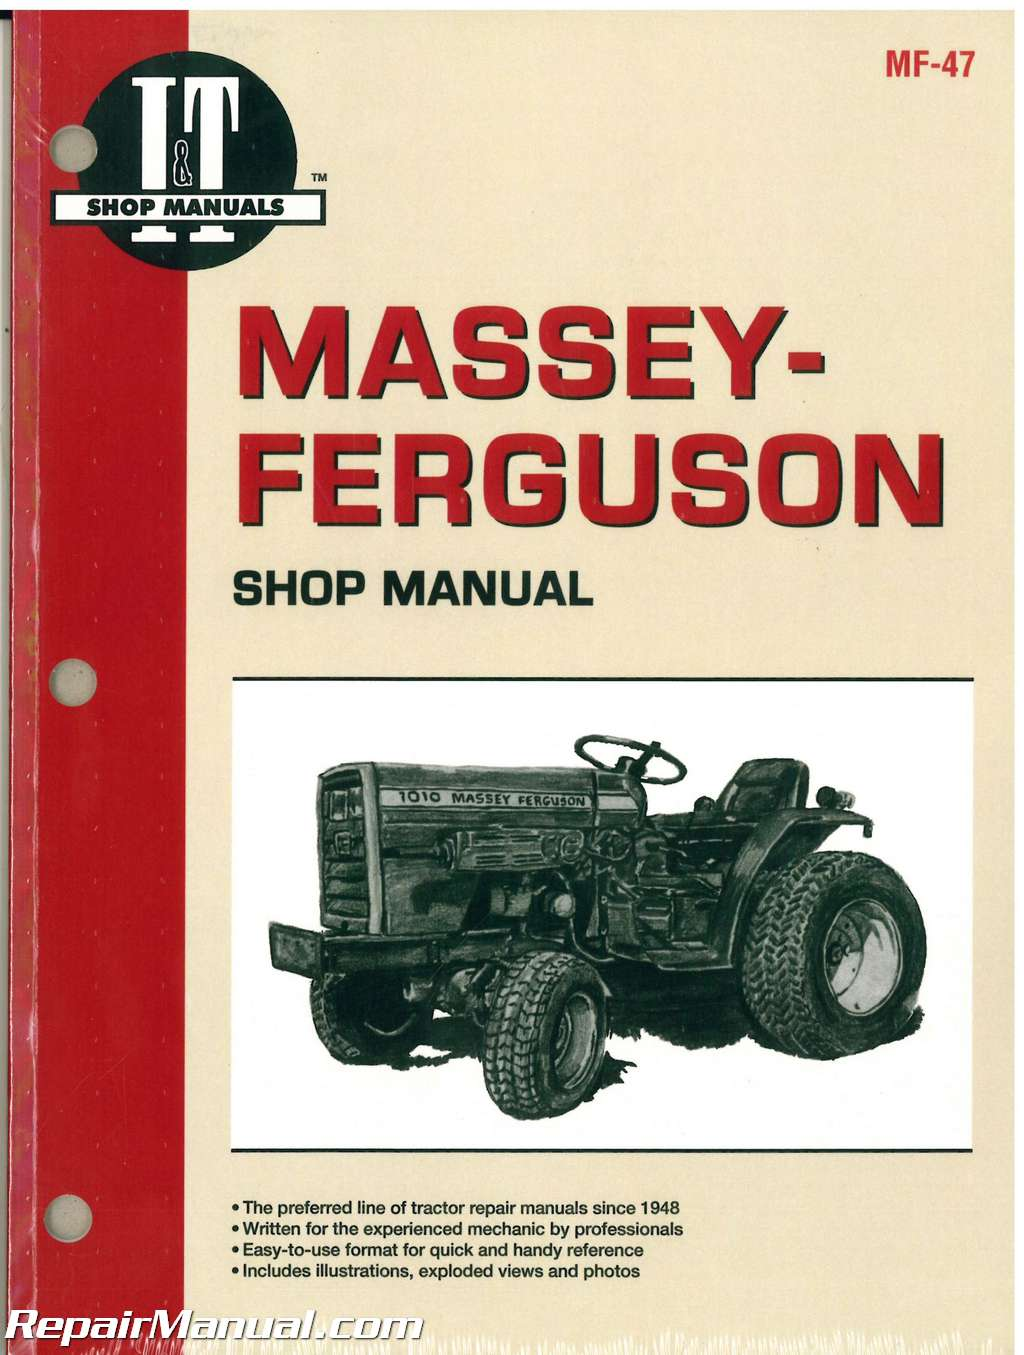 Farmall 504 Wiring Harness Library Evinrude Johnson Omc New Instrument Tach 174732 Massey Ferguson Harris 1010 1020 Tractor Manual Ih Super C Diagram For